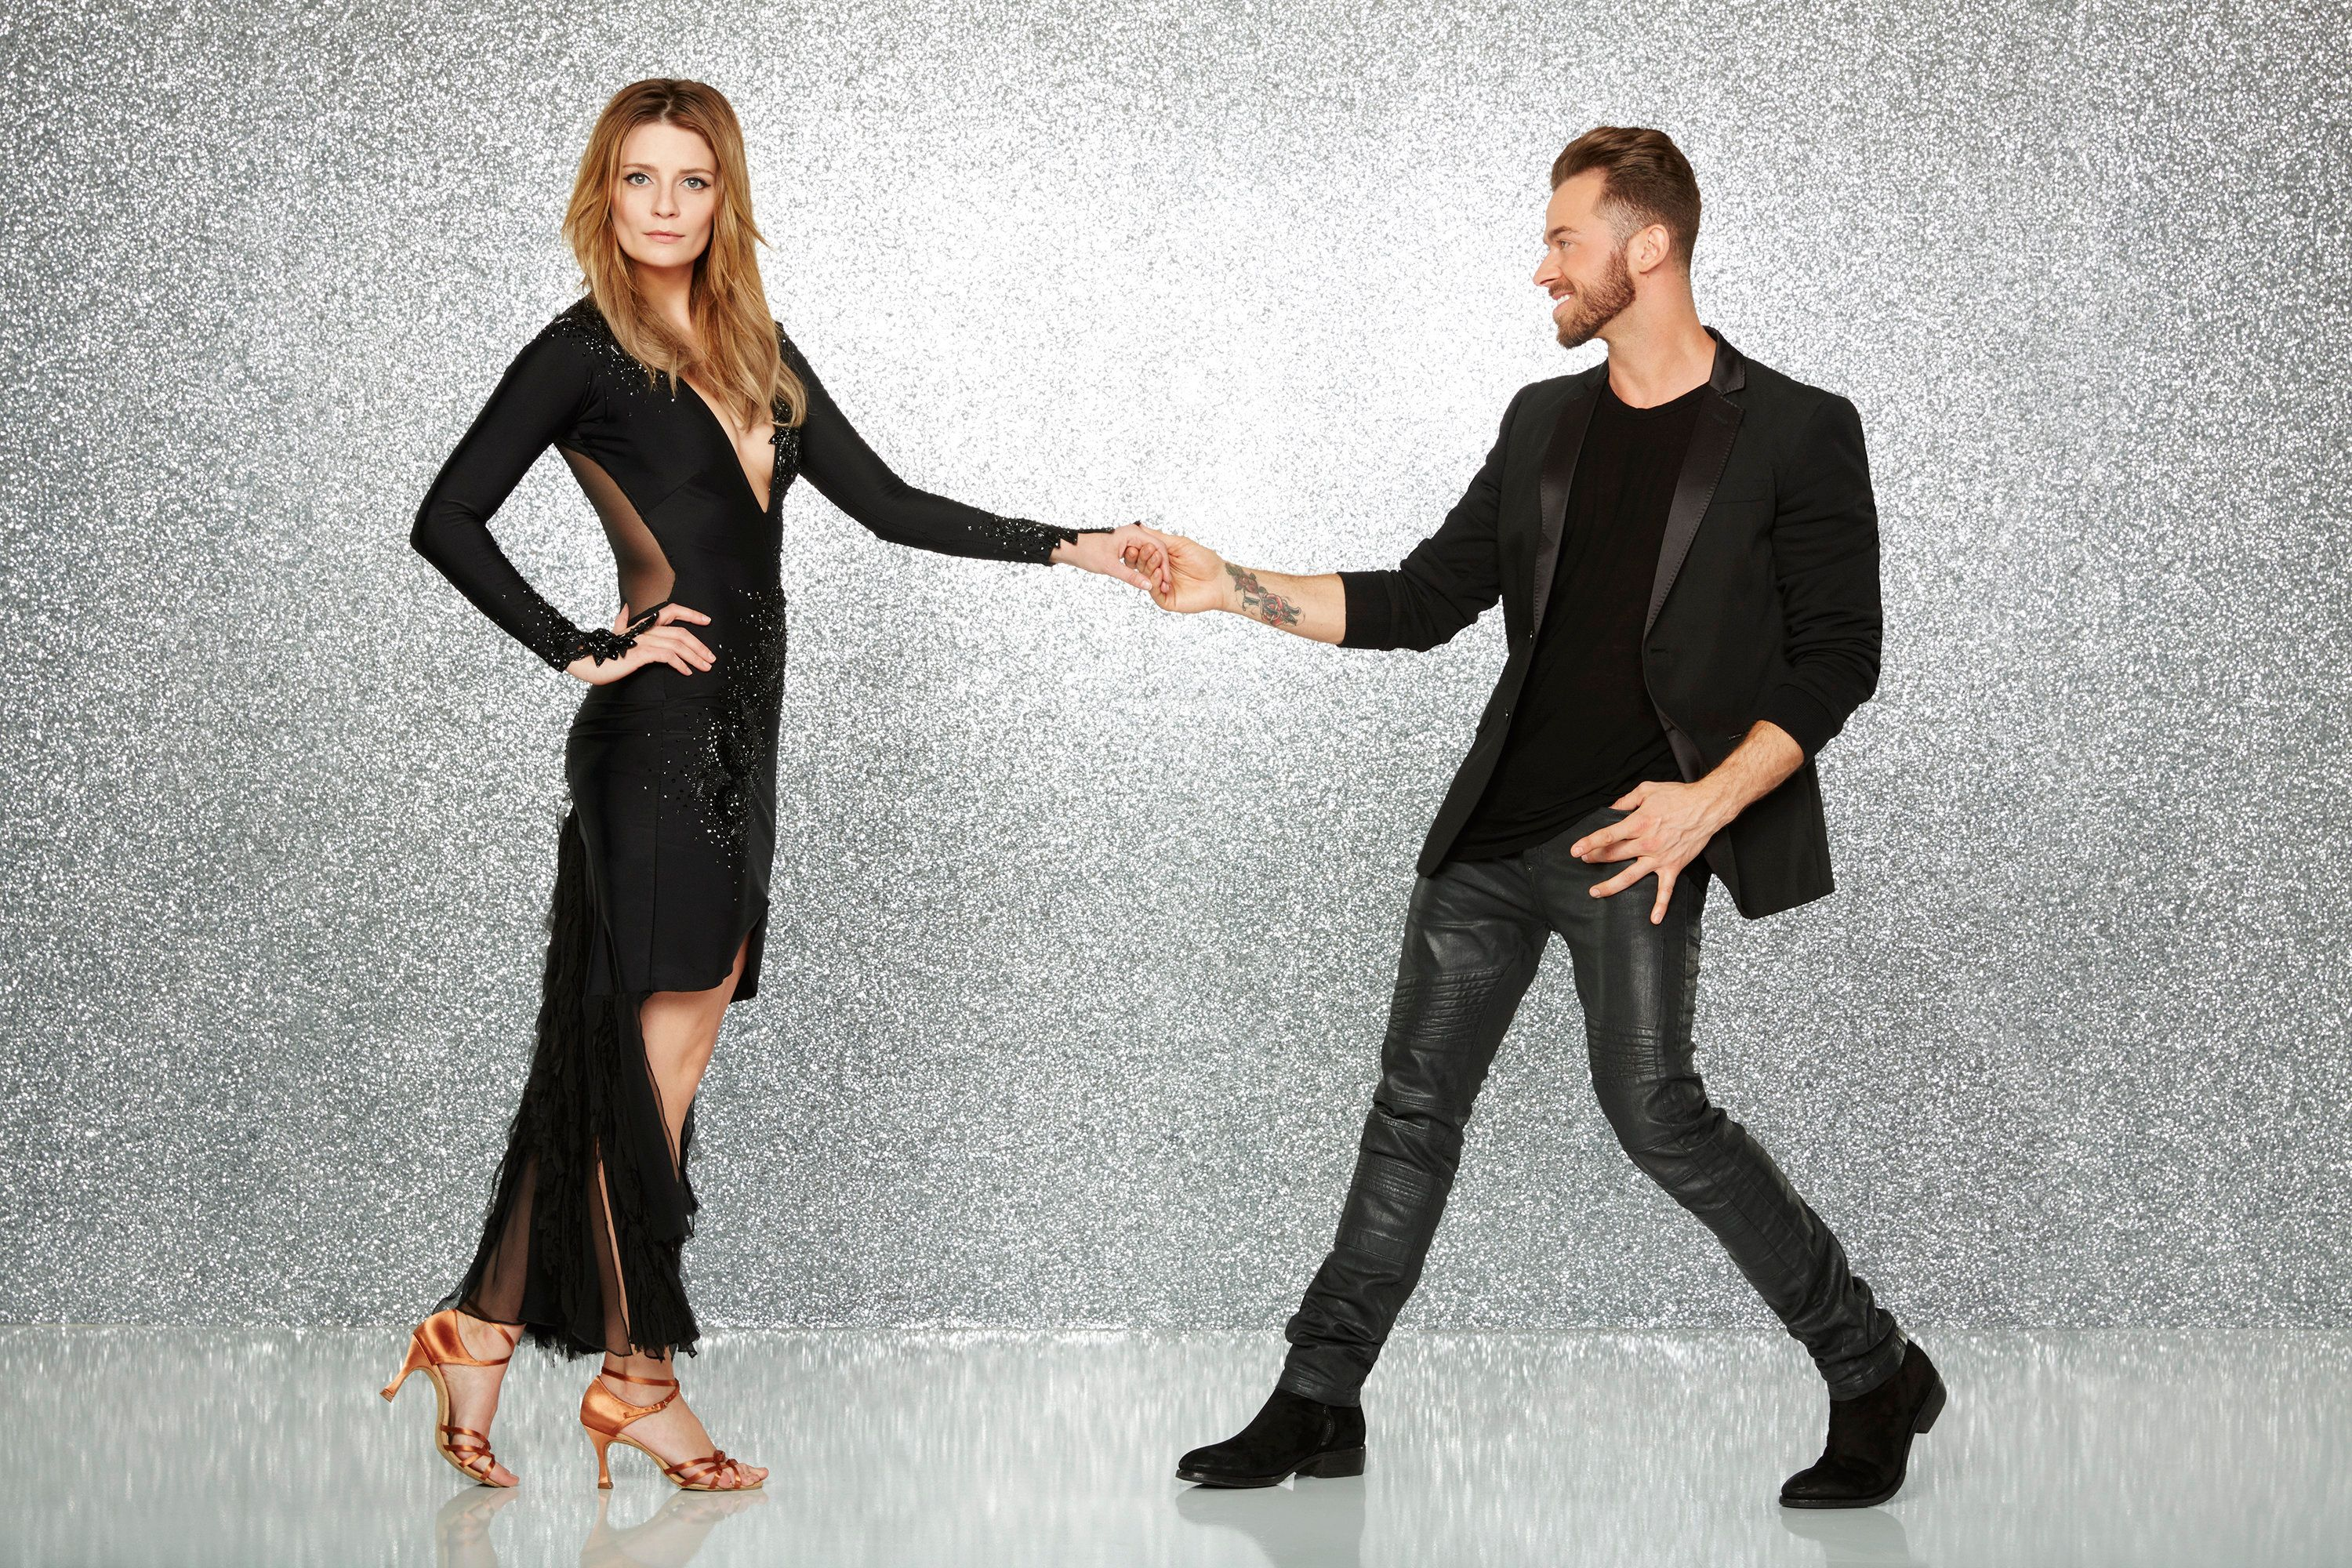 DANCING WITH THE STARS - MISCHA BARTON AND ARTEM CHIGVINTSEV - The stars grace the ballroom floor for the first time on live national television with their professional partners during the two-hour season premiere of 'Dancing with the Stars,' which airs MONDAY, MARCH 21 (8:00-10:01 p.m., ET) on the ABC Television Network. (Photo by Craig Sjodin/ABC via Getty Images)